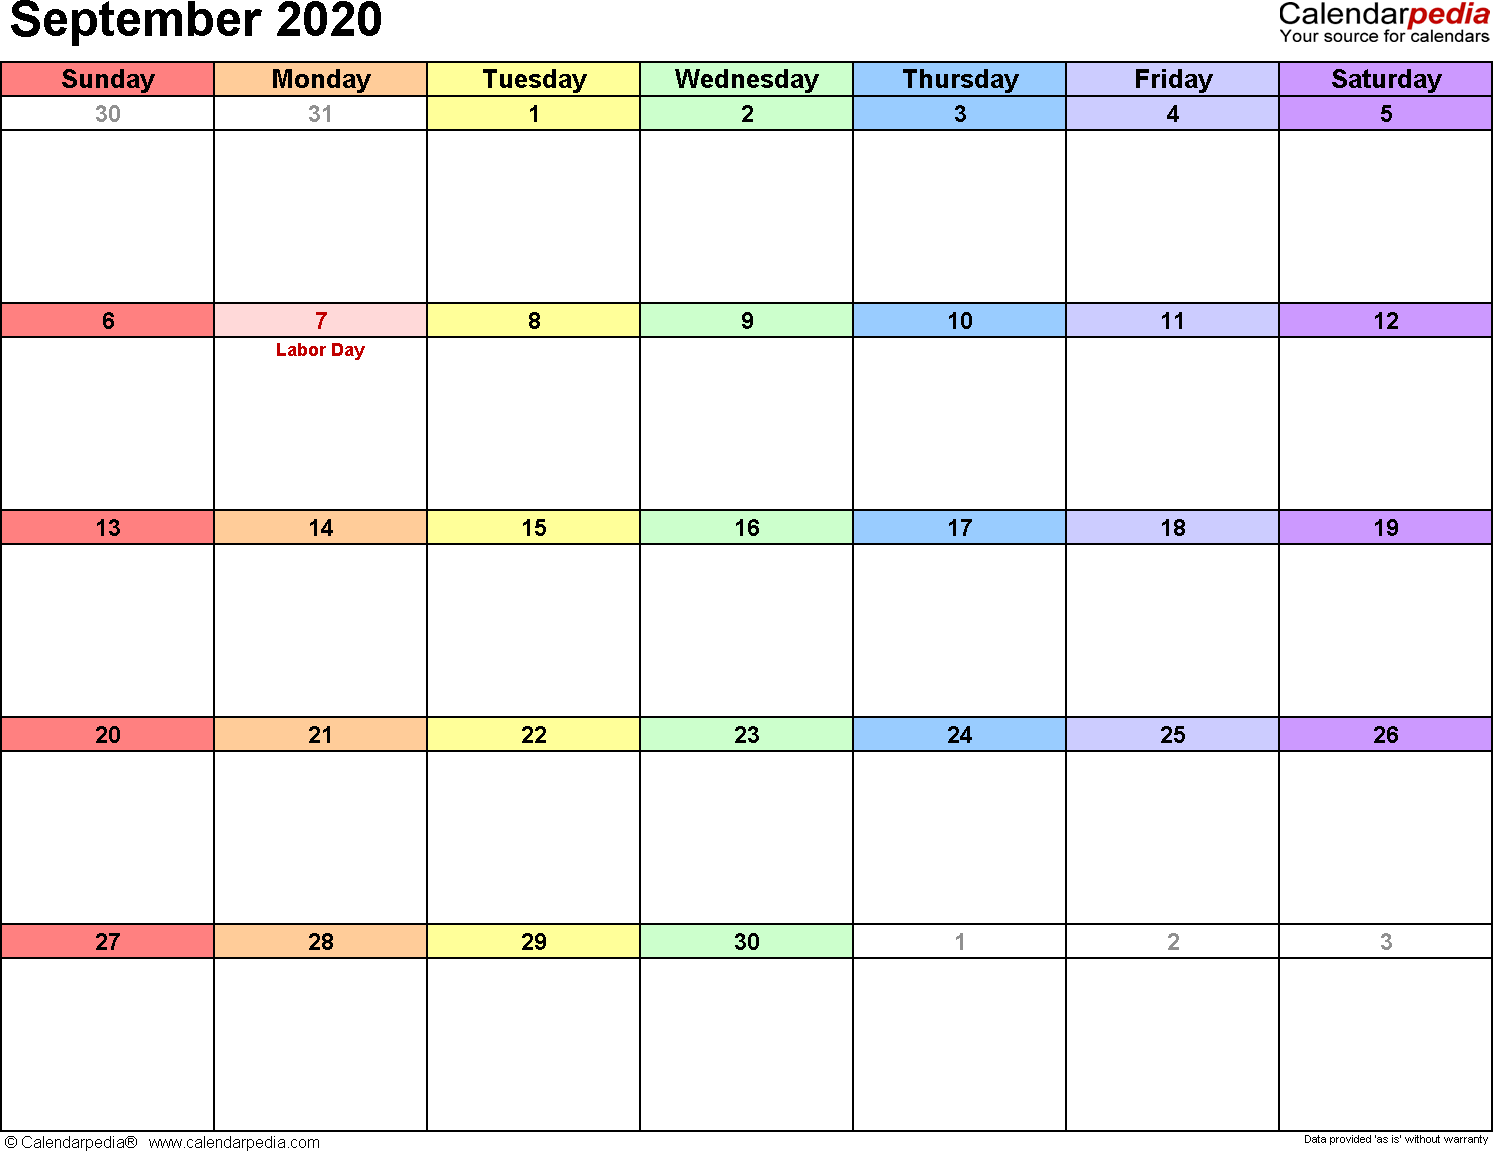 Calendar For Sept 2020 September 2020 Calendars for Word, Excel & PDF